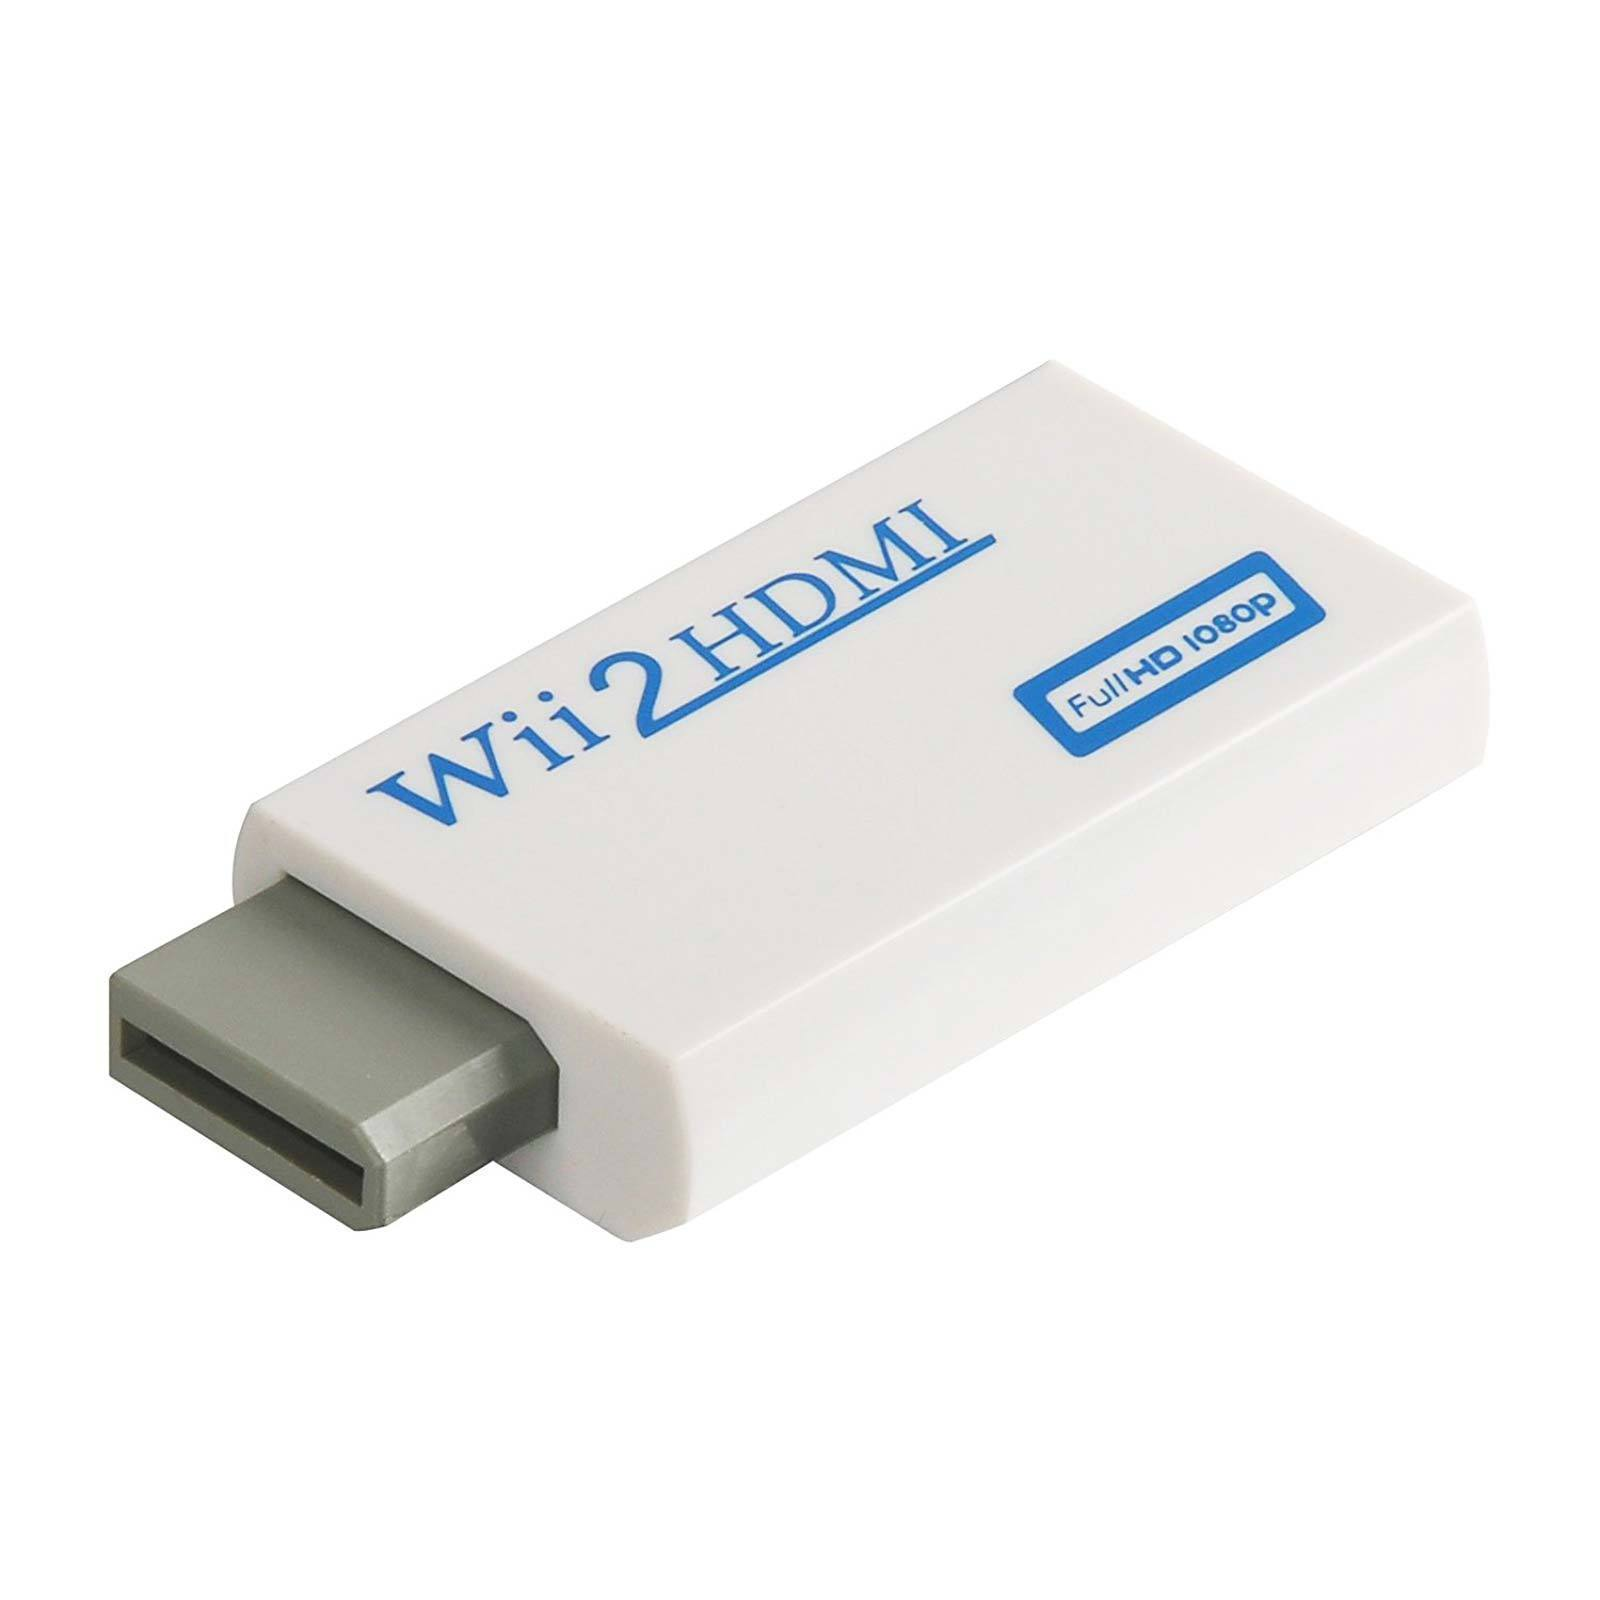 Wii to HDMI Adapter Converter